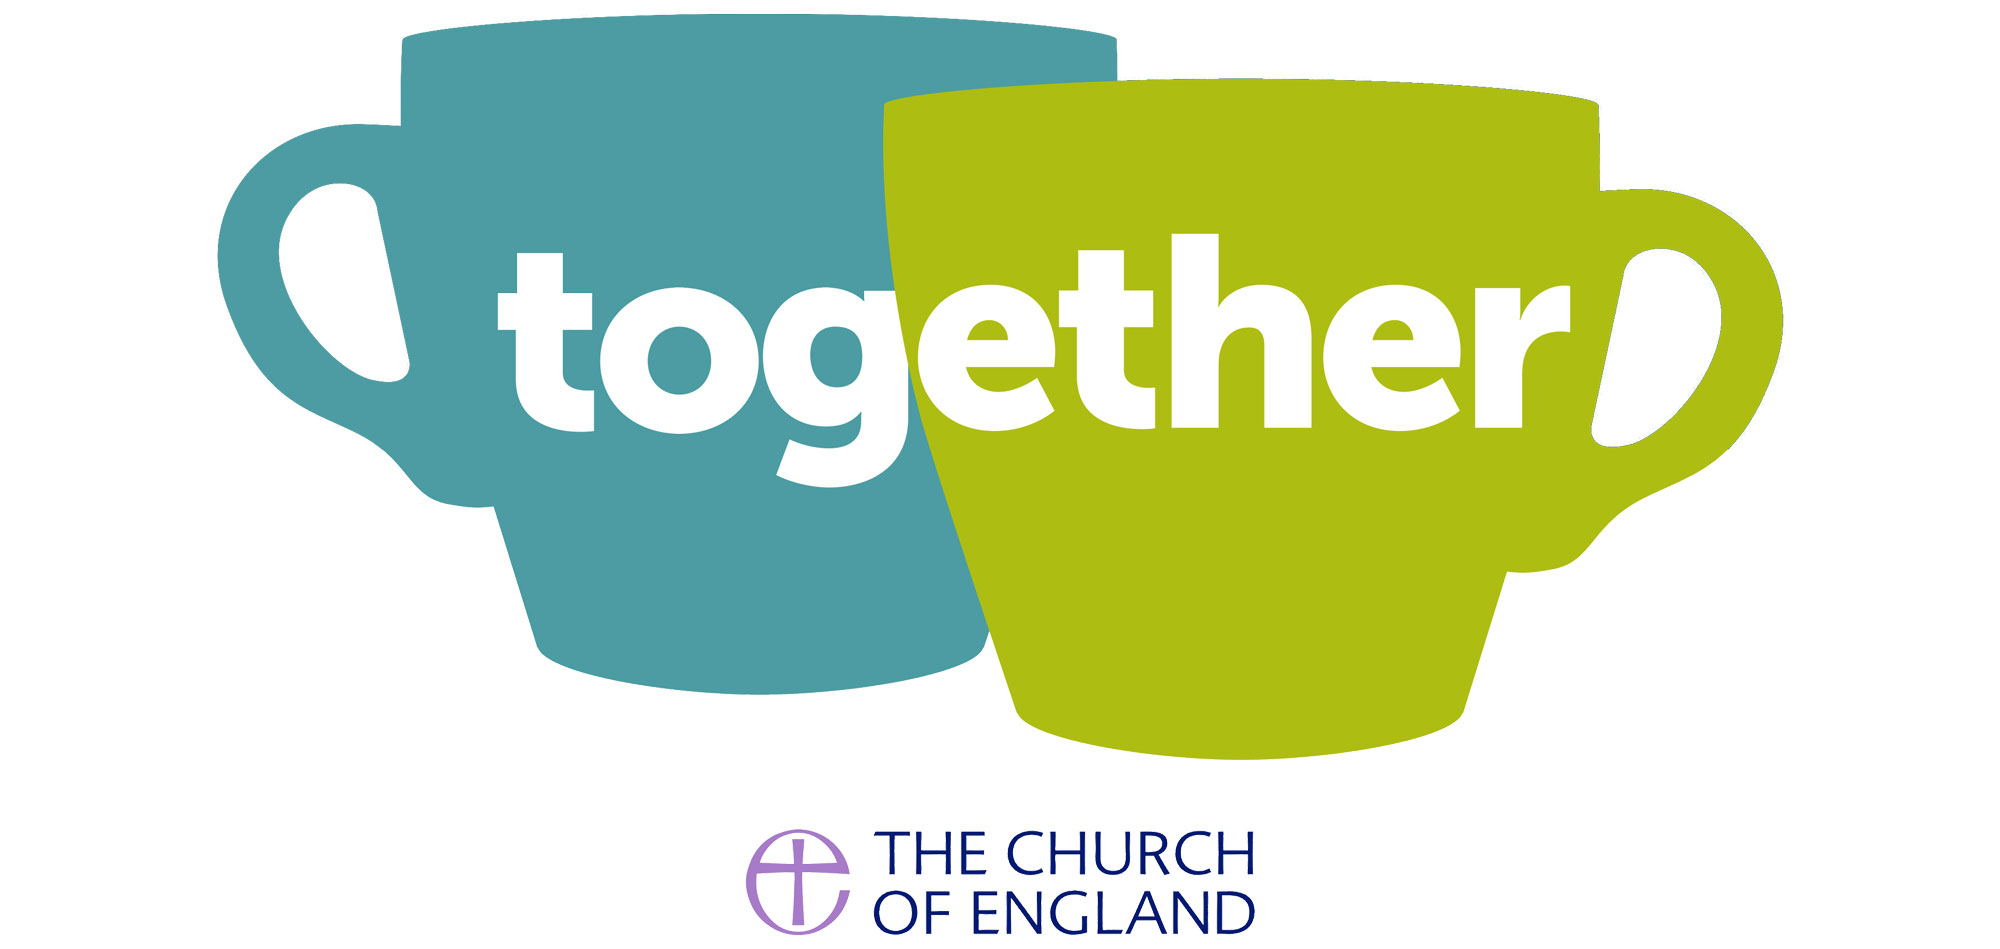 cofe together prayer logo web